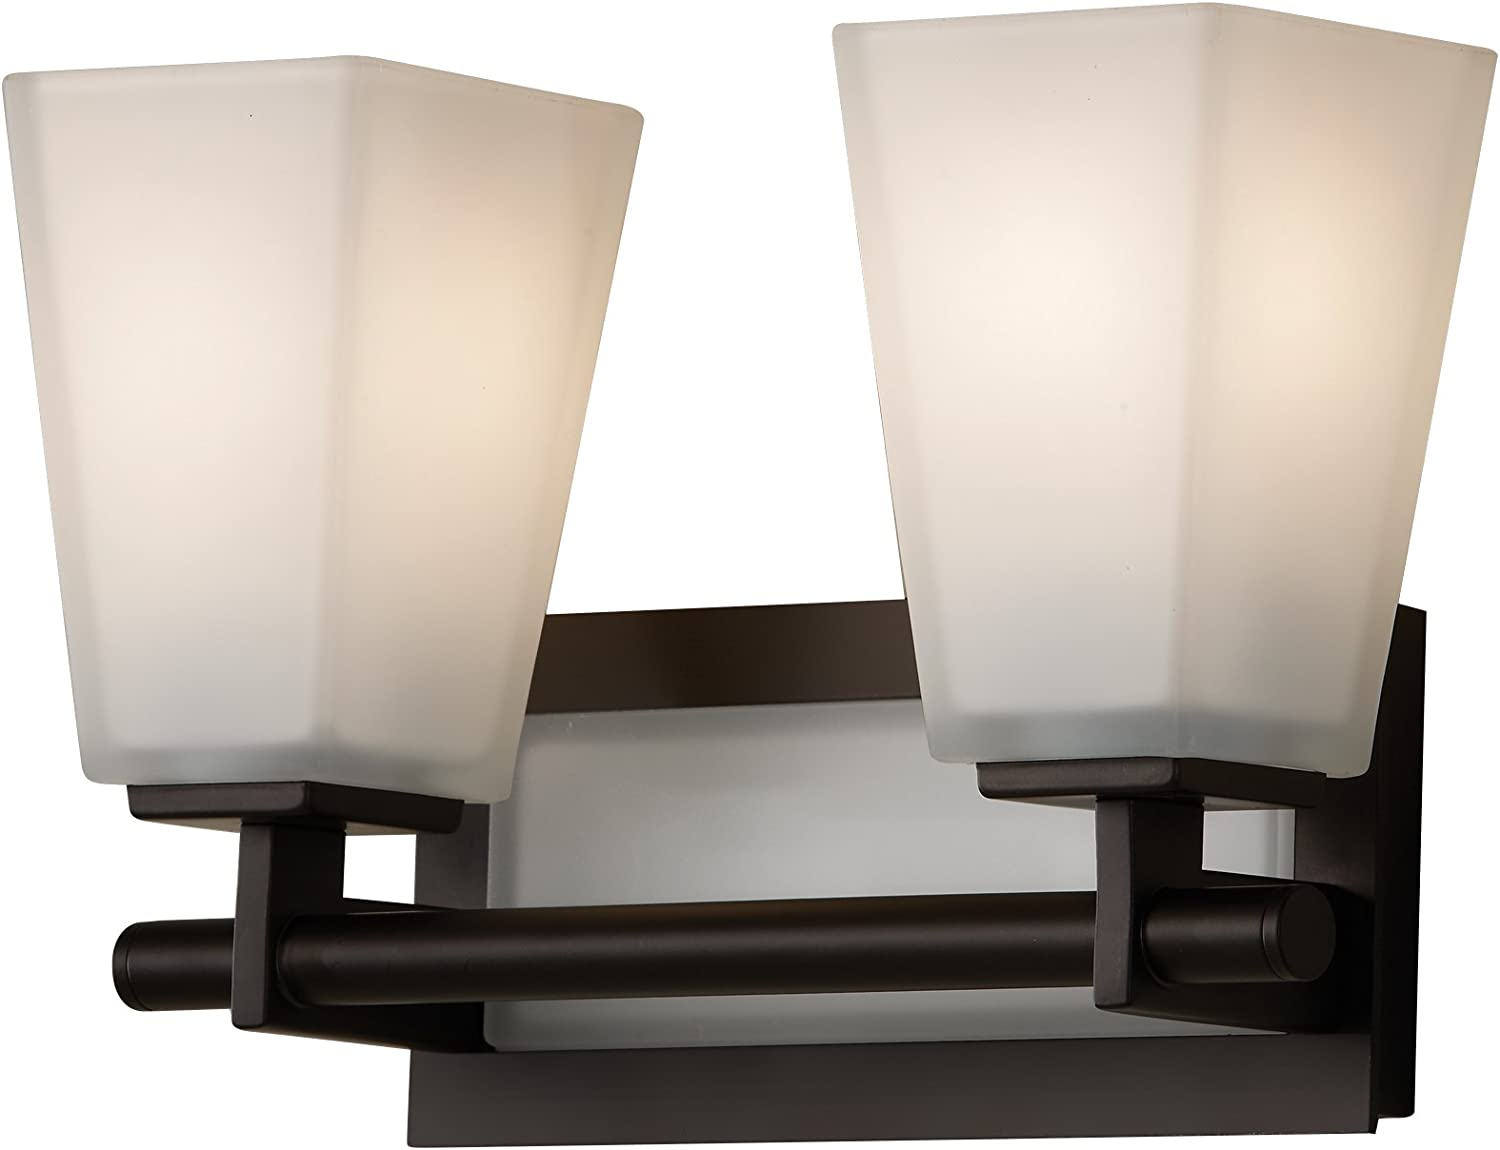 Feiss VS16602-ORB Clayton Glass Wall Vanity Bath Lighting, Bronze, 2-Light 13 W x 9 H 200watts